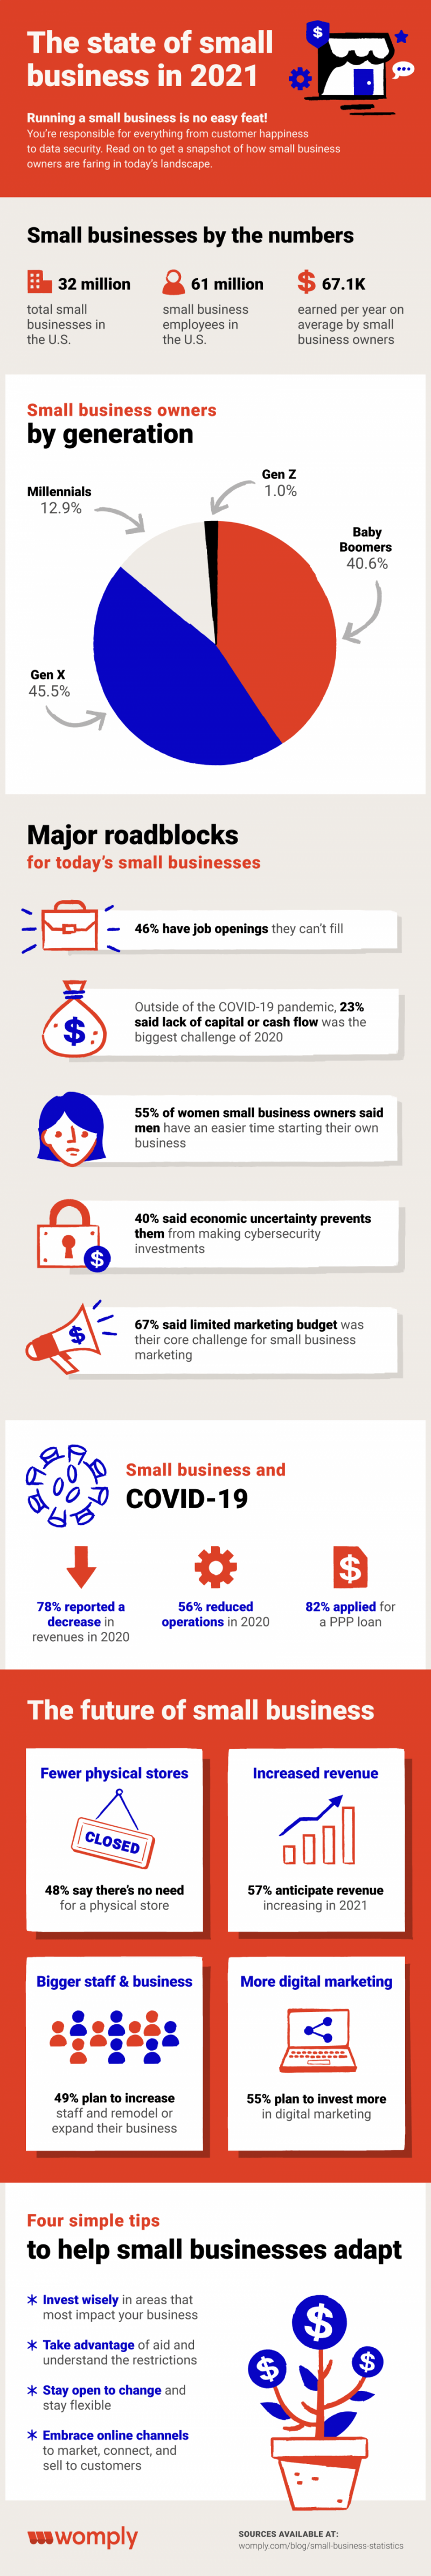 state of small business in 2021